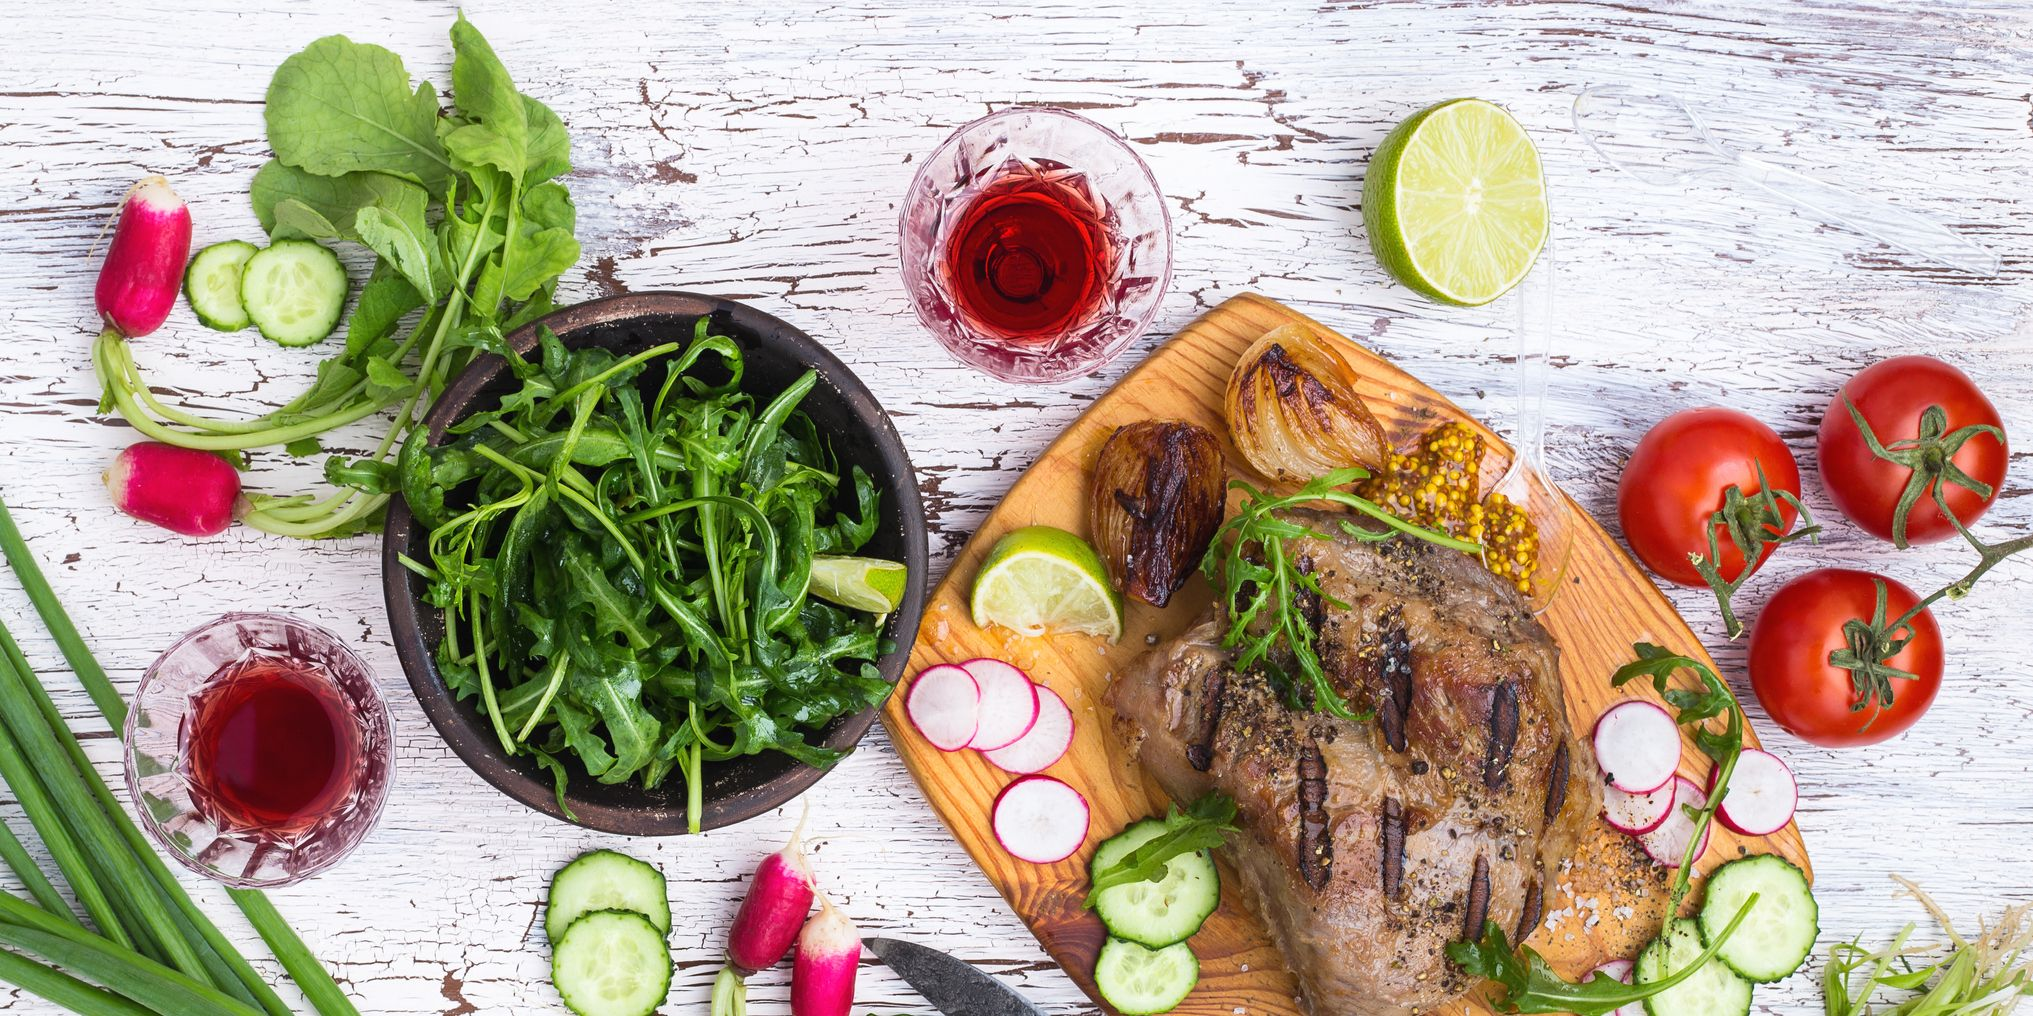 Grilled juicy meat with vegetables on a white rustic wooden background viewed from above, picnic table